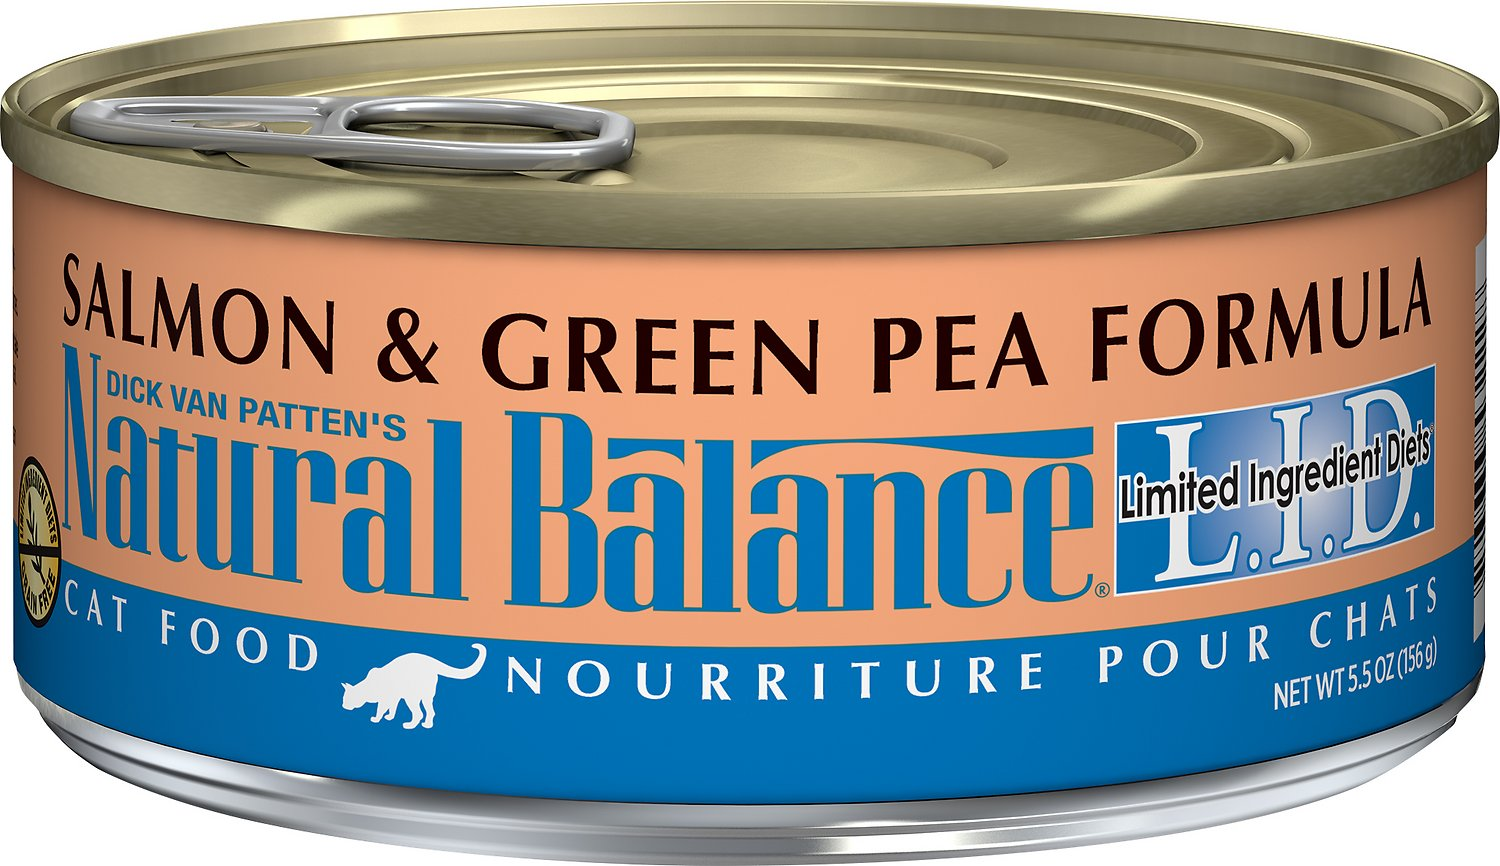 Natural Balance L.I.D. Limited Ingredient Diets Salmon & Green Pea Formula Grain-Free Canned Cat Food Image